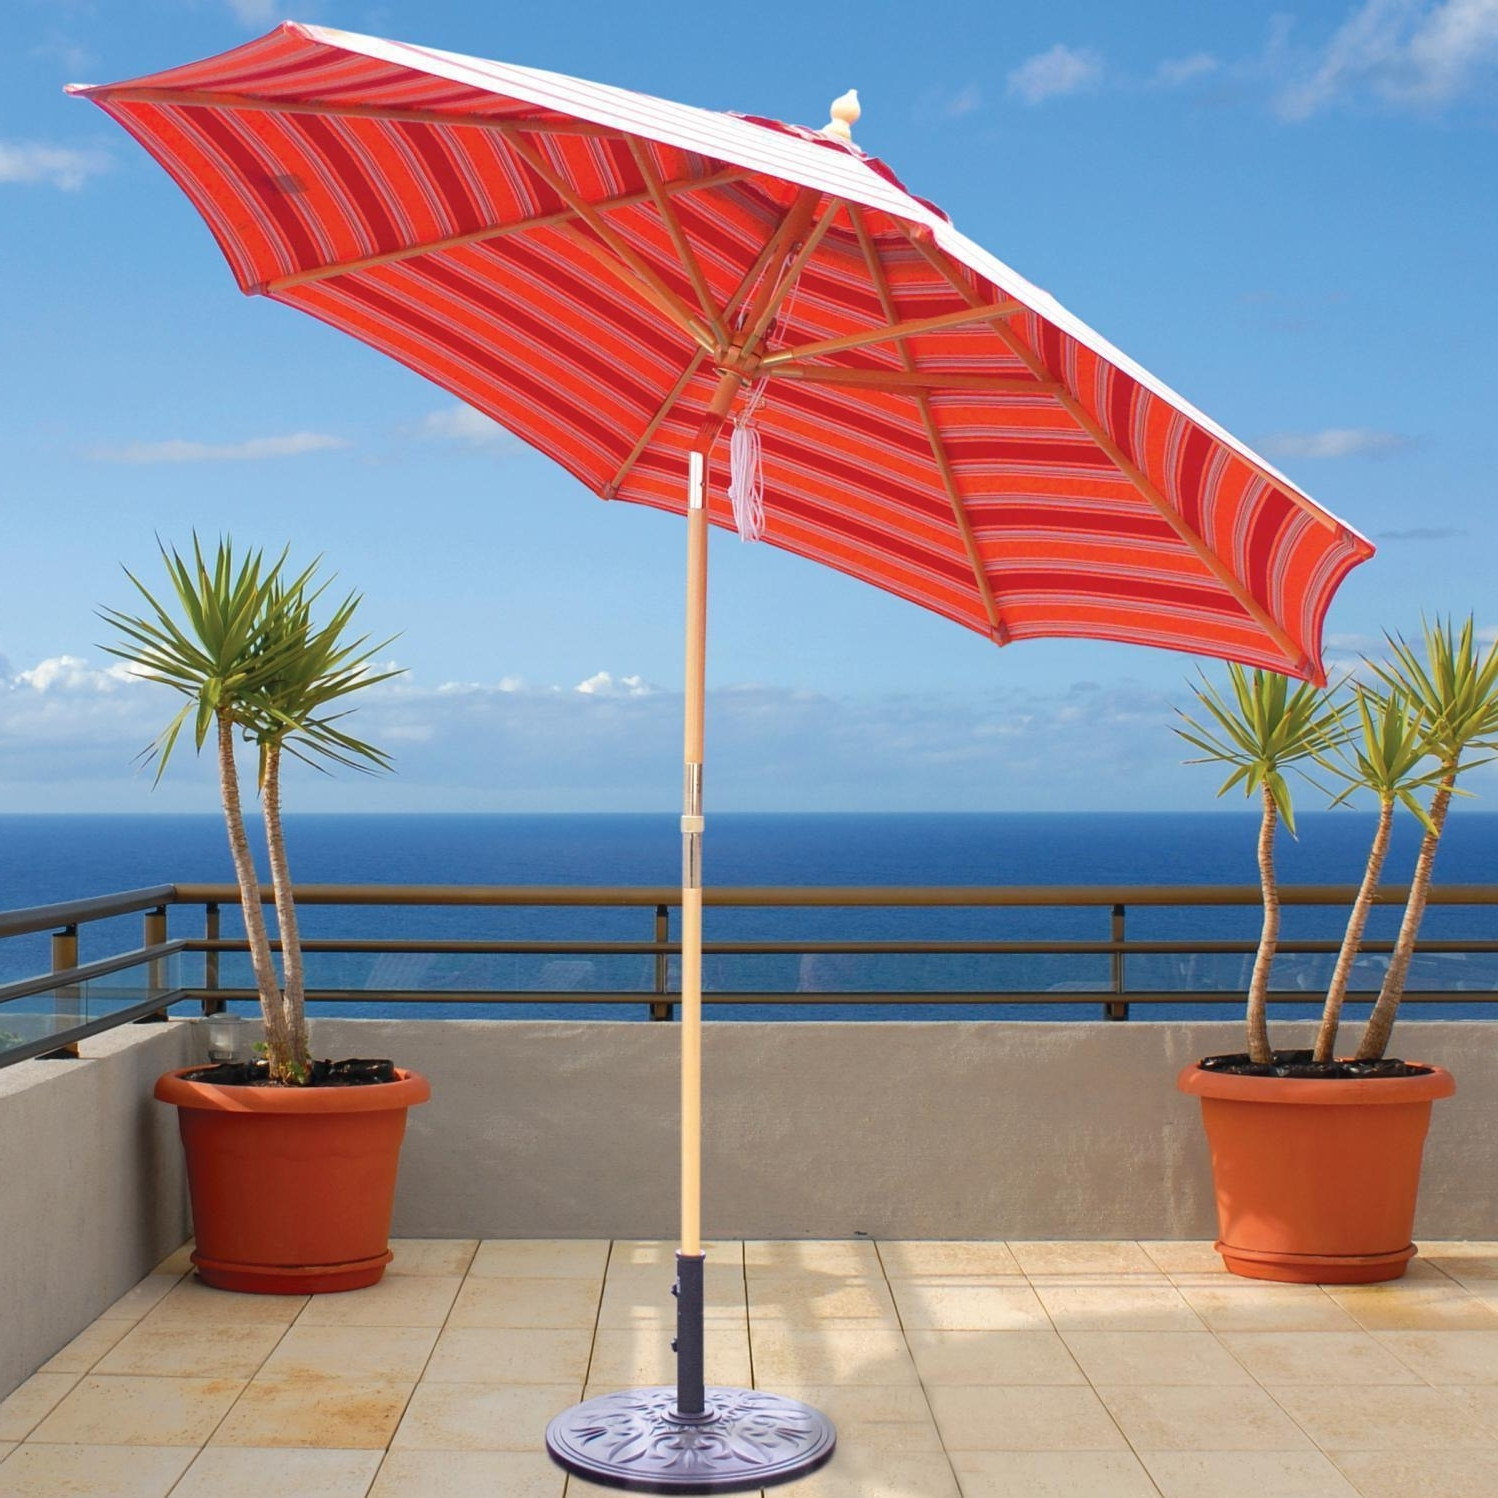 Galtech 9 Ft Wood Patio Umbrella With Crank Lift And Rotational Tilt In Fashionable Wooden Patio Umbrellas (View 4 of 20)